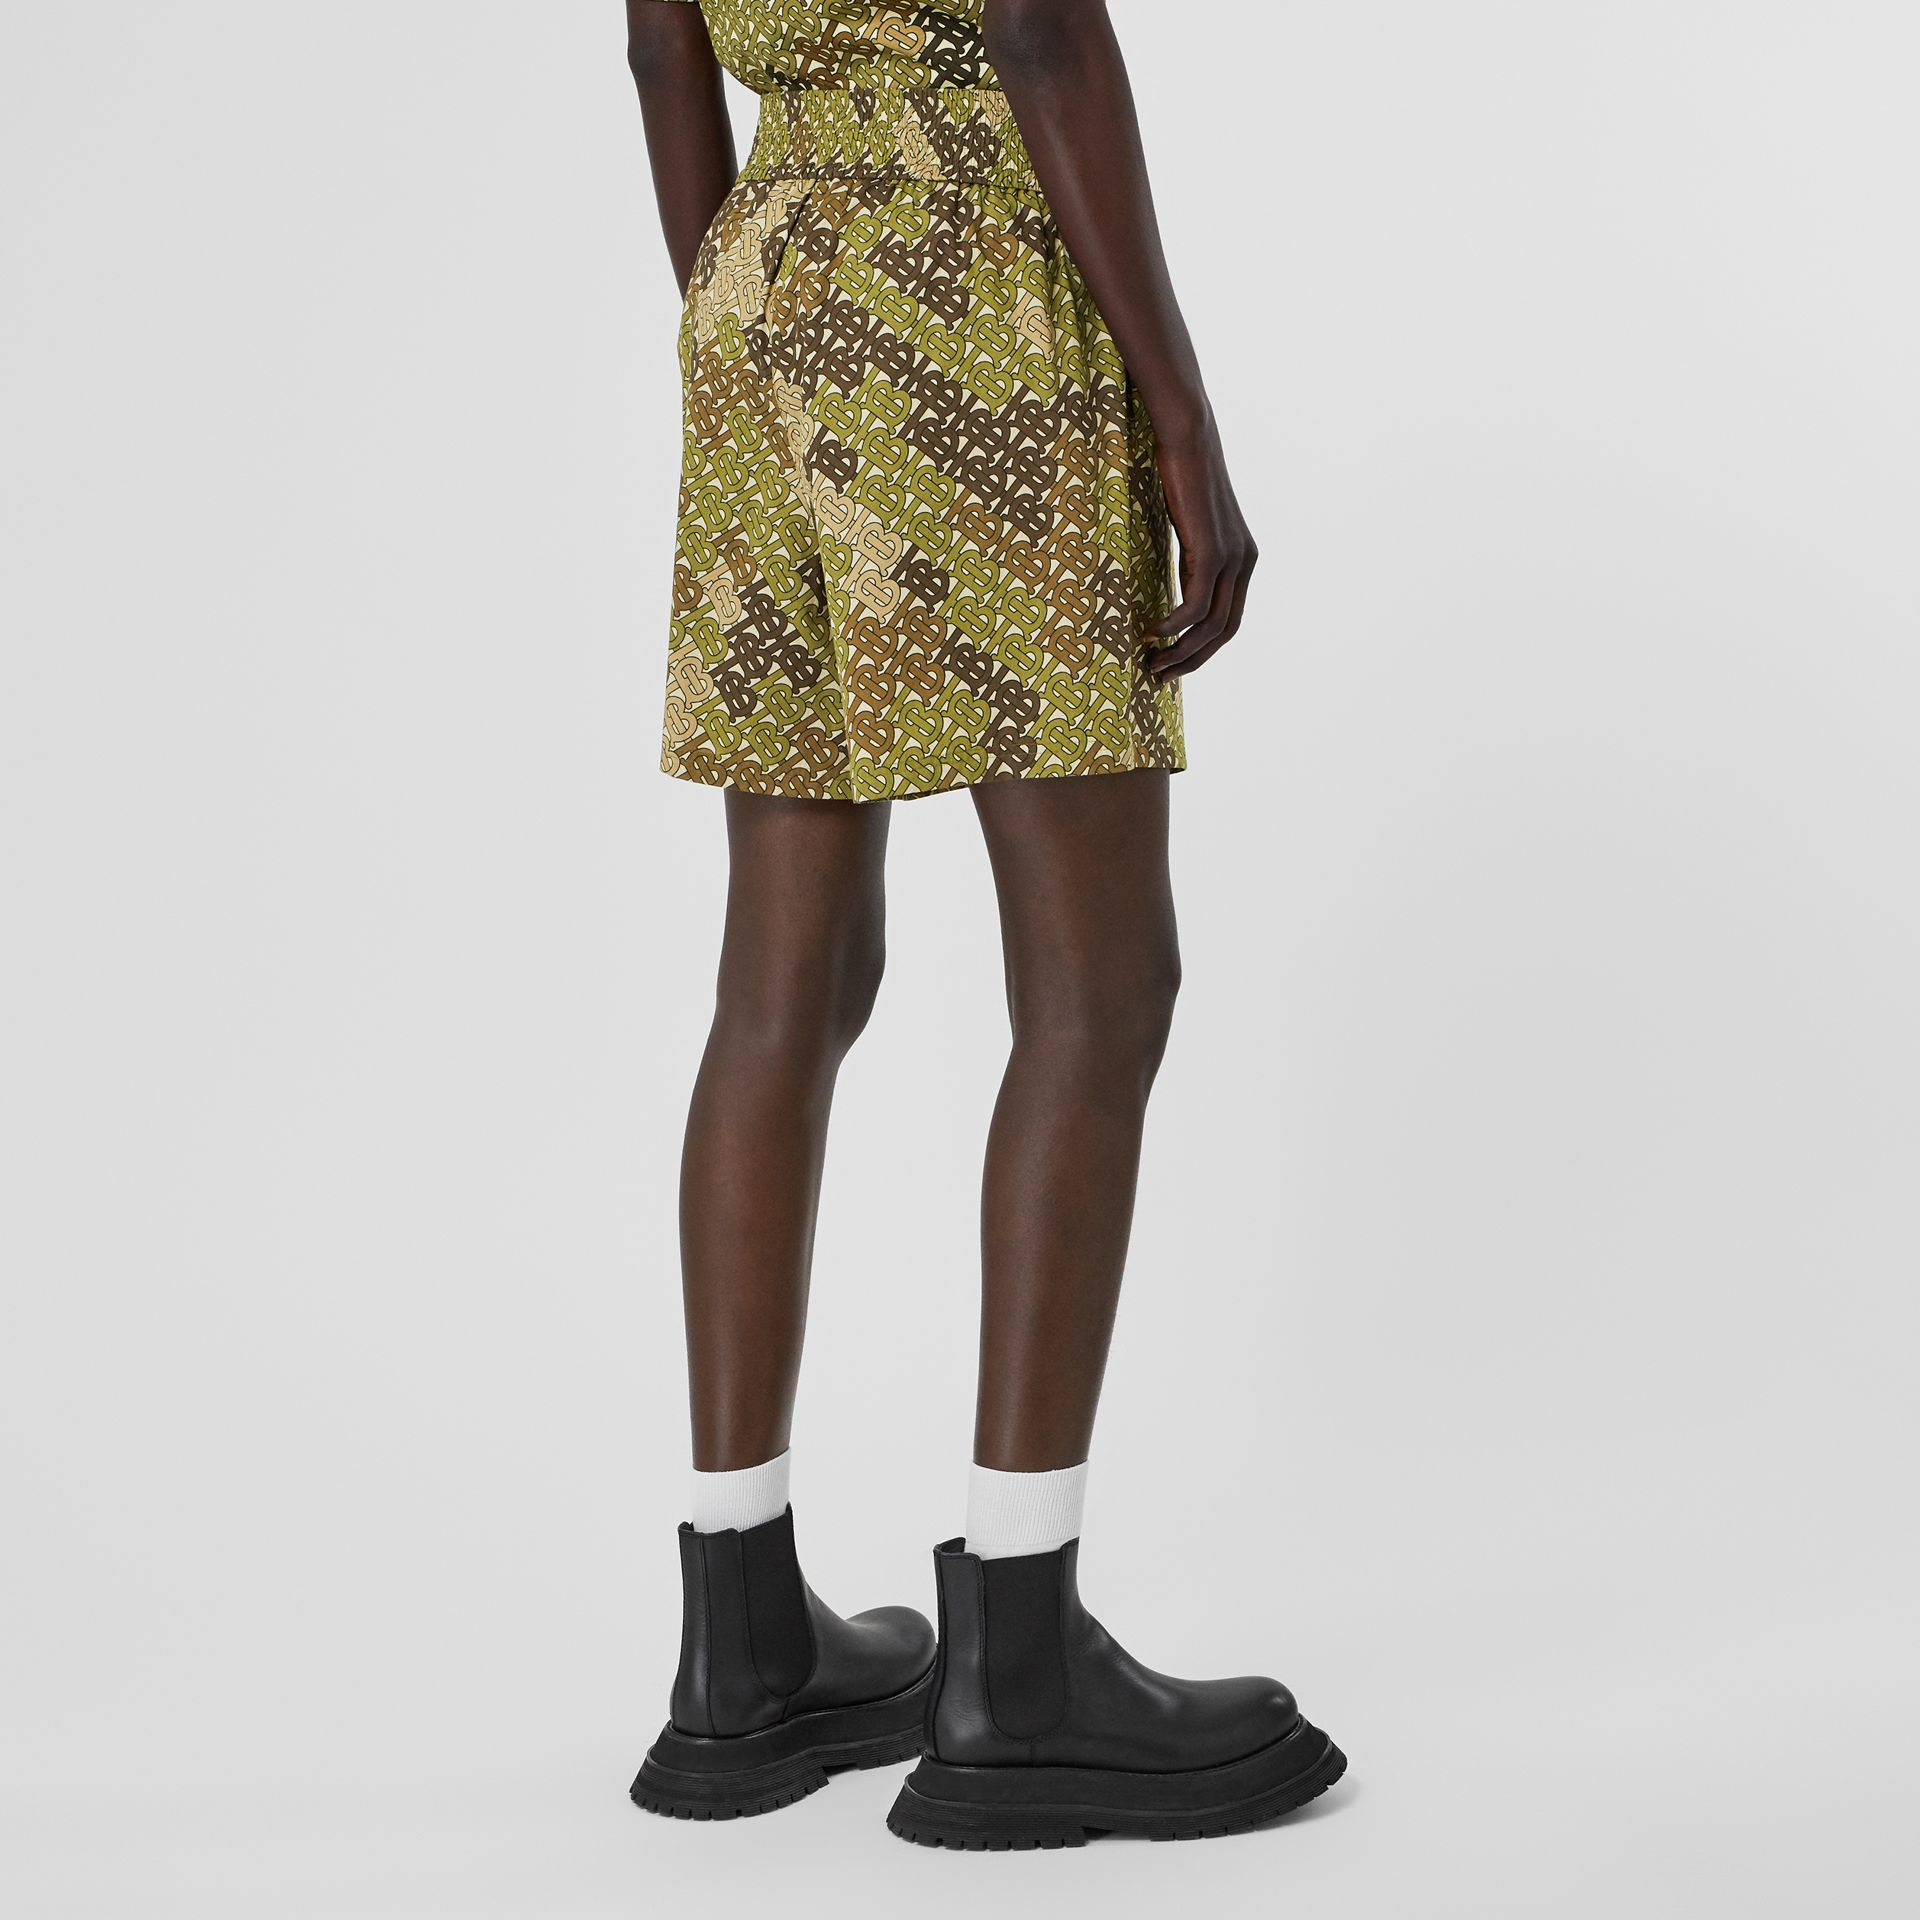 Monogram Print Cotton Poplin Shorts in Khaki Green - Women | Burberry - gallery image 2